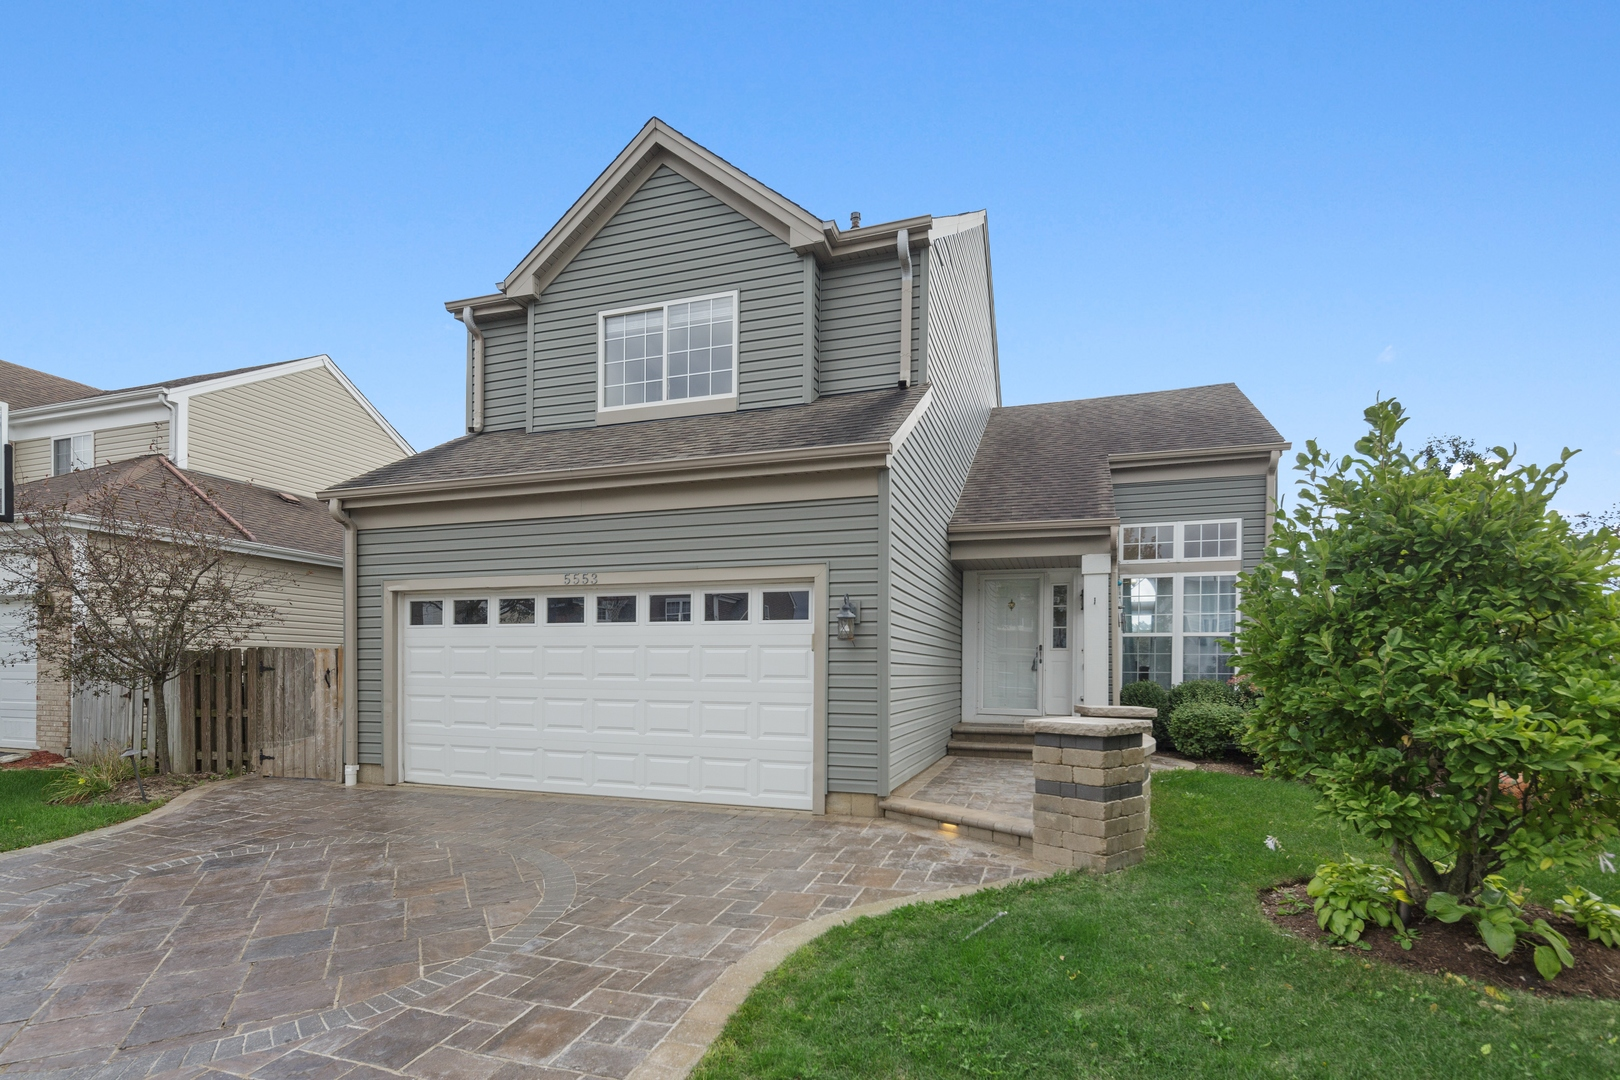 Photo for 5553 Alexandria Drive, Lake In The Hills, IL 60156 (MLS # 10887536)